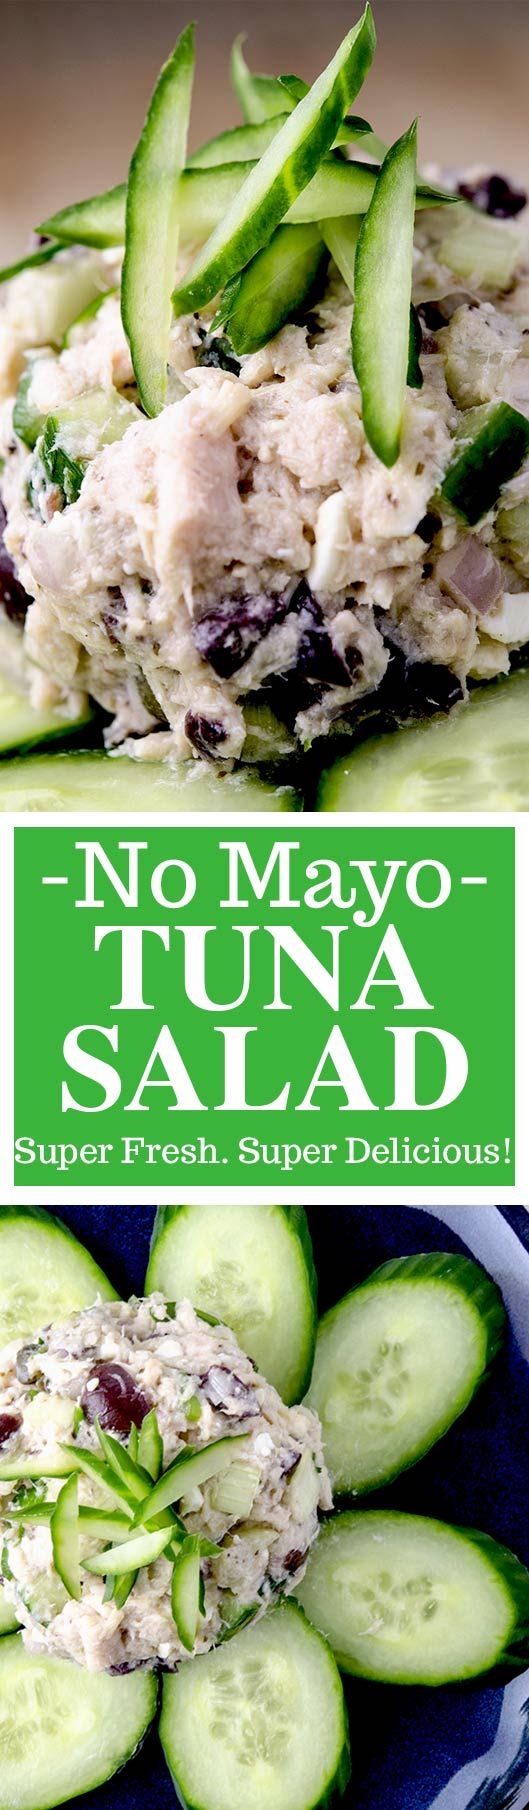 If you're searching for easy low-carb basic recipes, you came to the right place. Here's the best no-mayo Mediterranean tuna salad! Canned tuna is a very healthy fish and it goes well with many ingredients. Give it a try and experiment, see what combinations you like! If you can have gluten, put the salad in a wrap, but have some tissues close for the juice. Or put it between two slices of bread and you got a tuna sandwich! Give it a try!